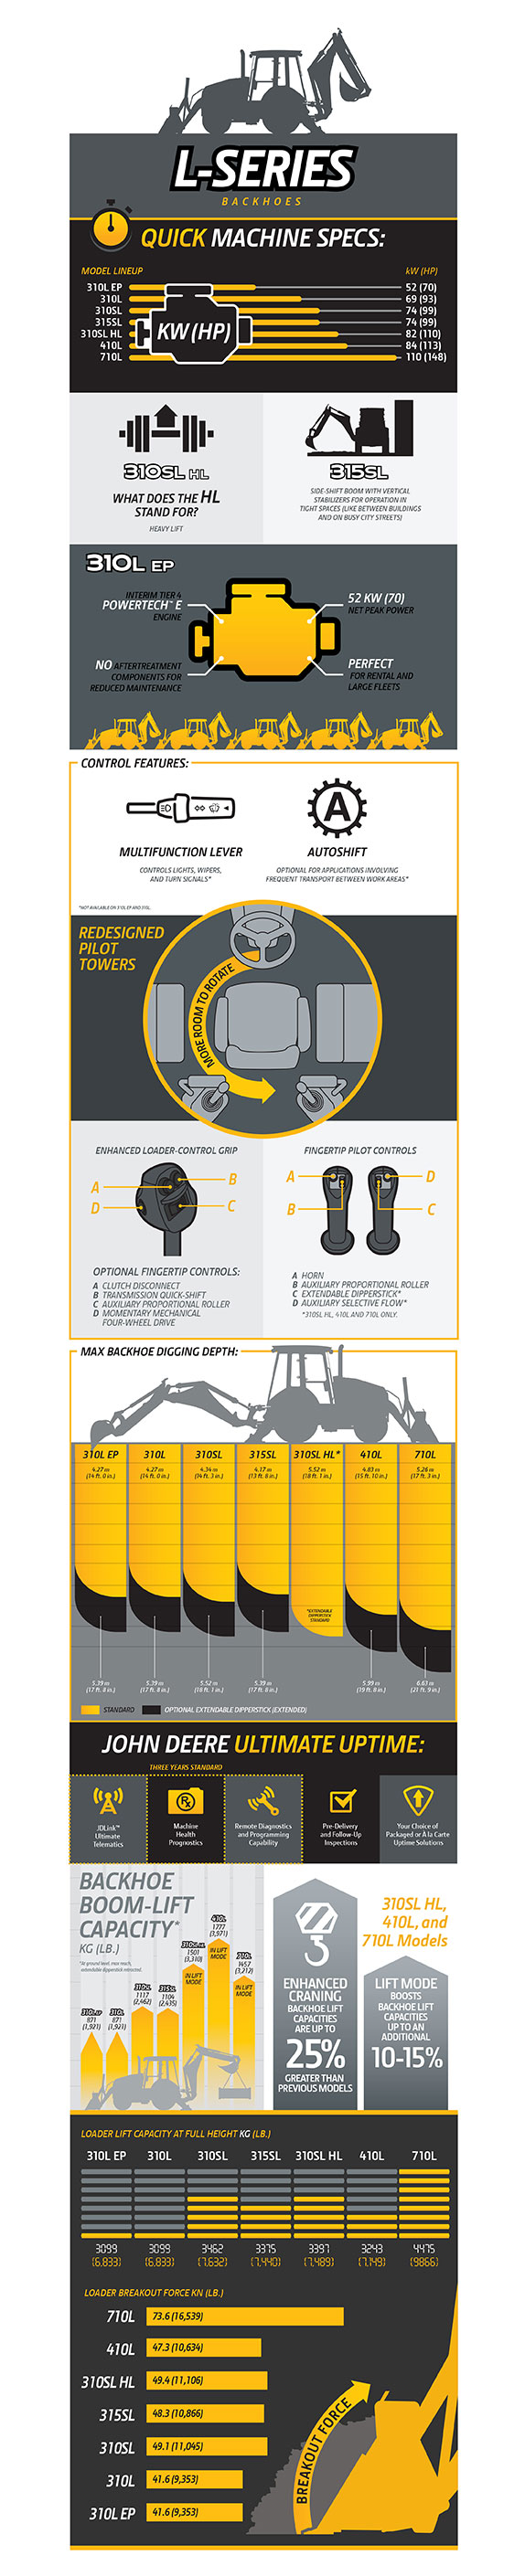 L-Series Backhoe Infographic